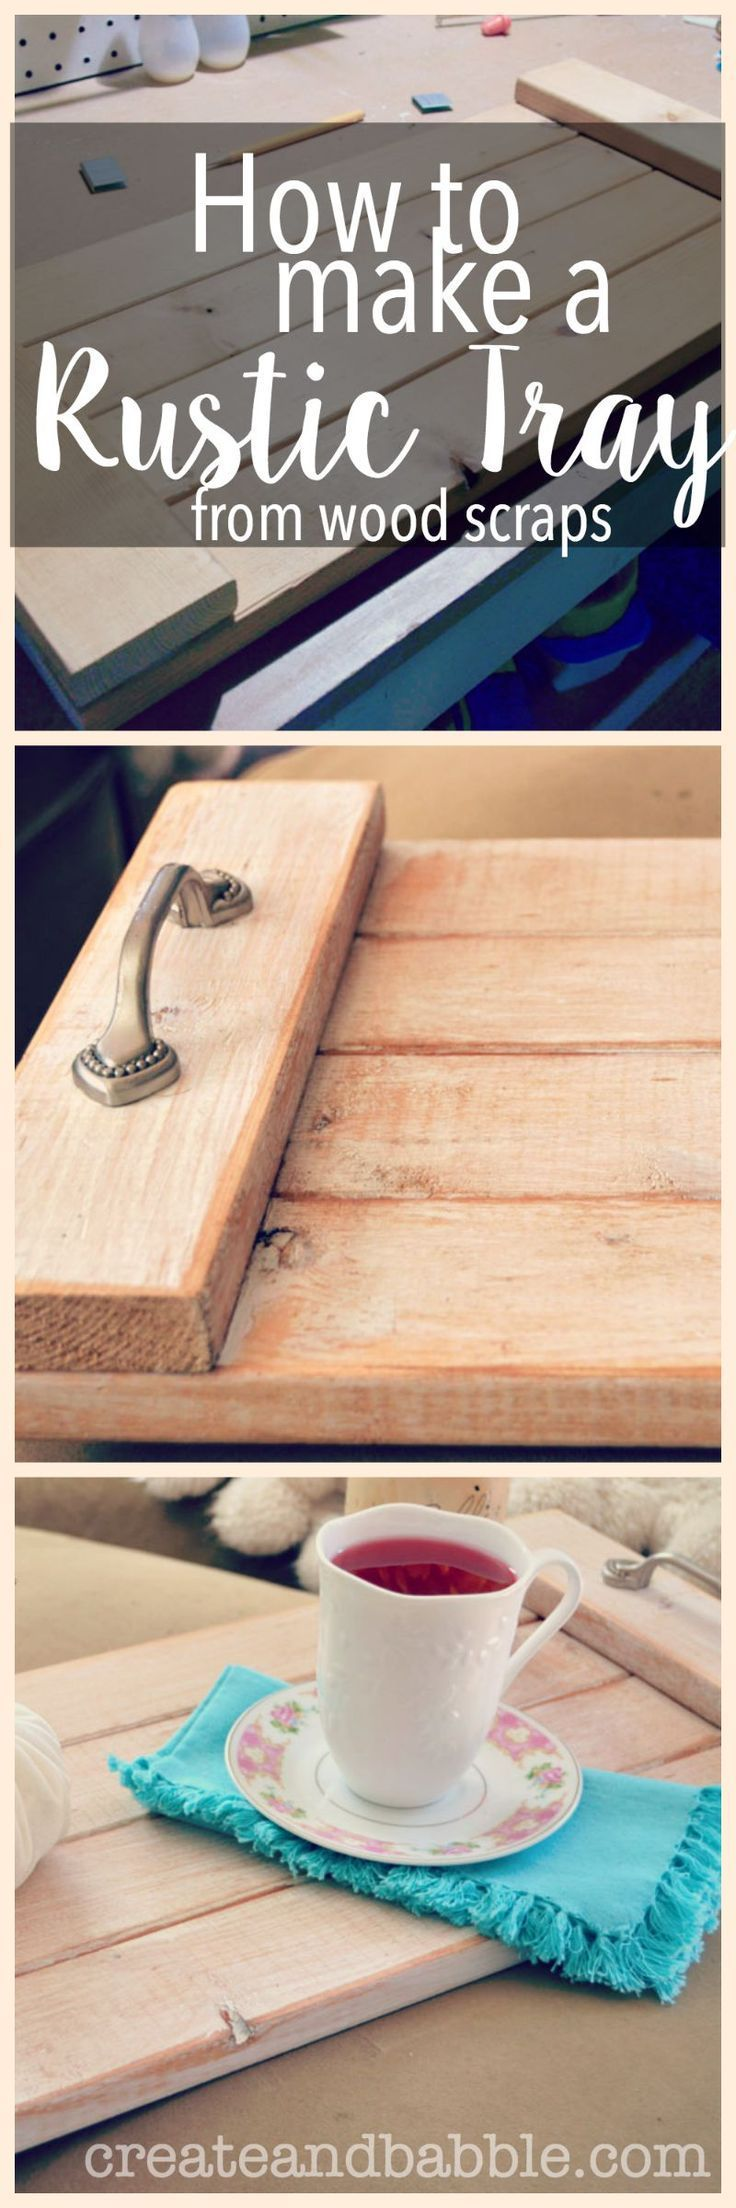 how to make a rustic tray from wood scraps